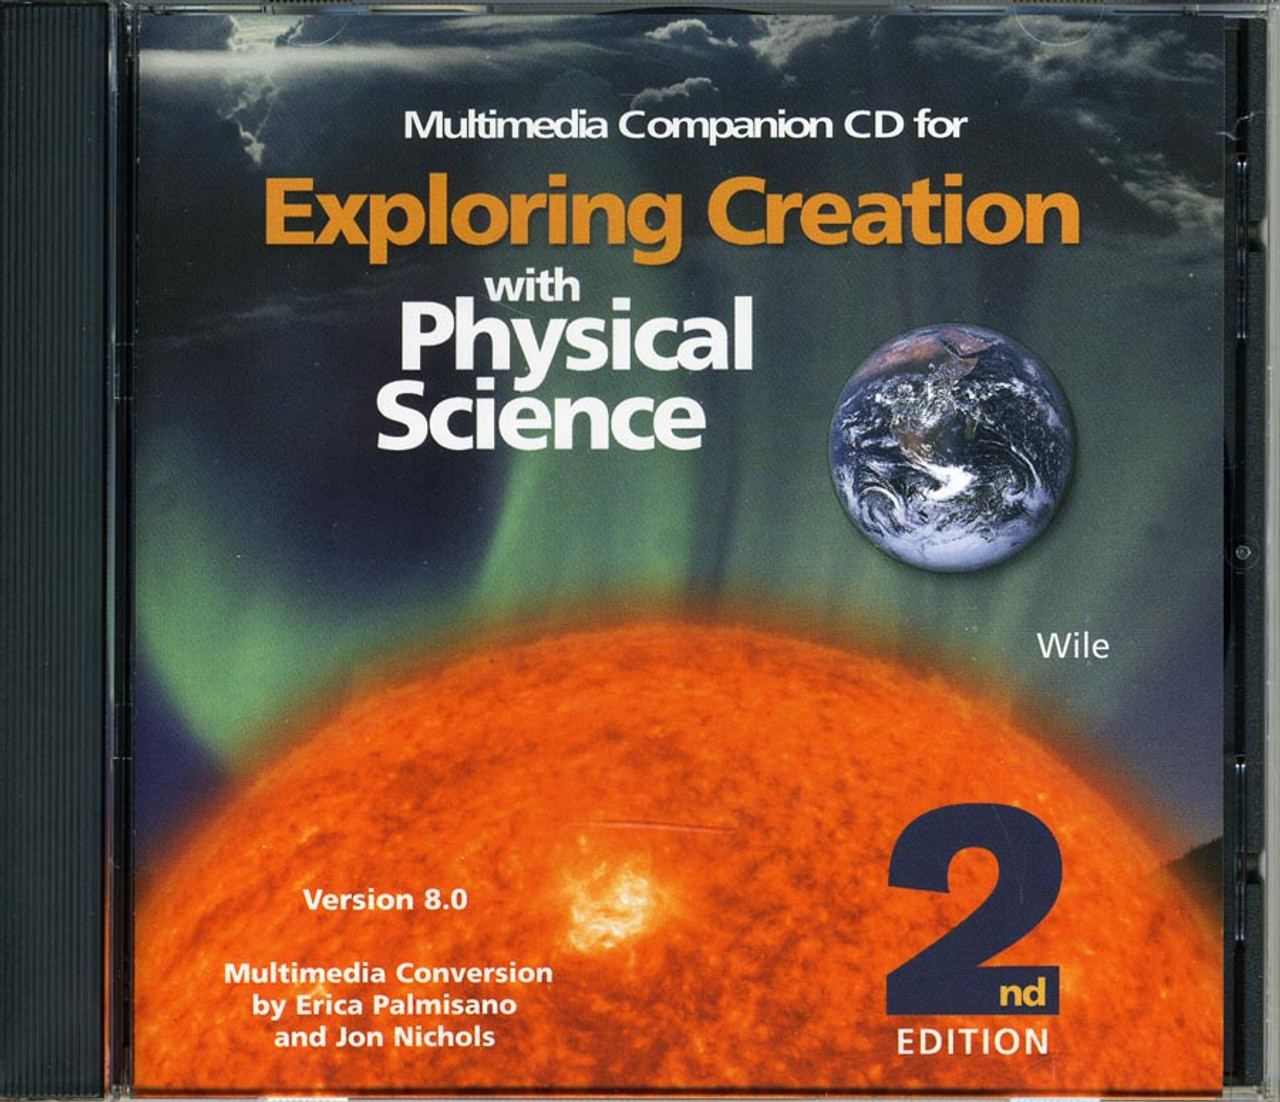 Physical Science: Physical Science Companion CD